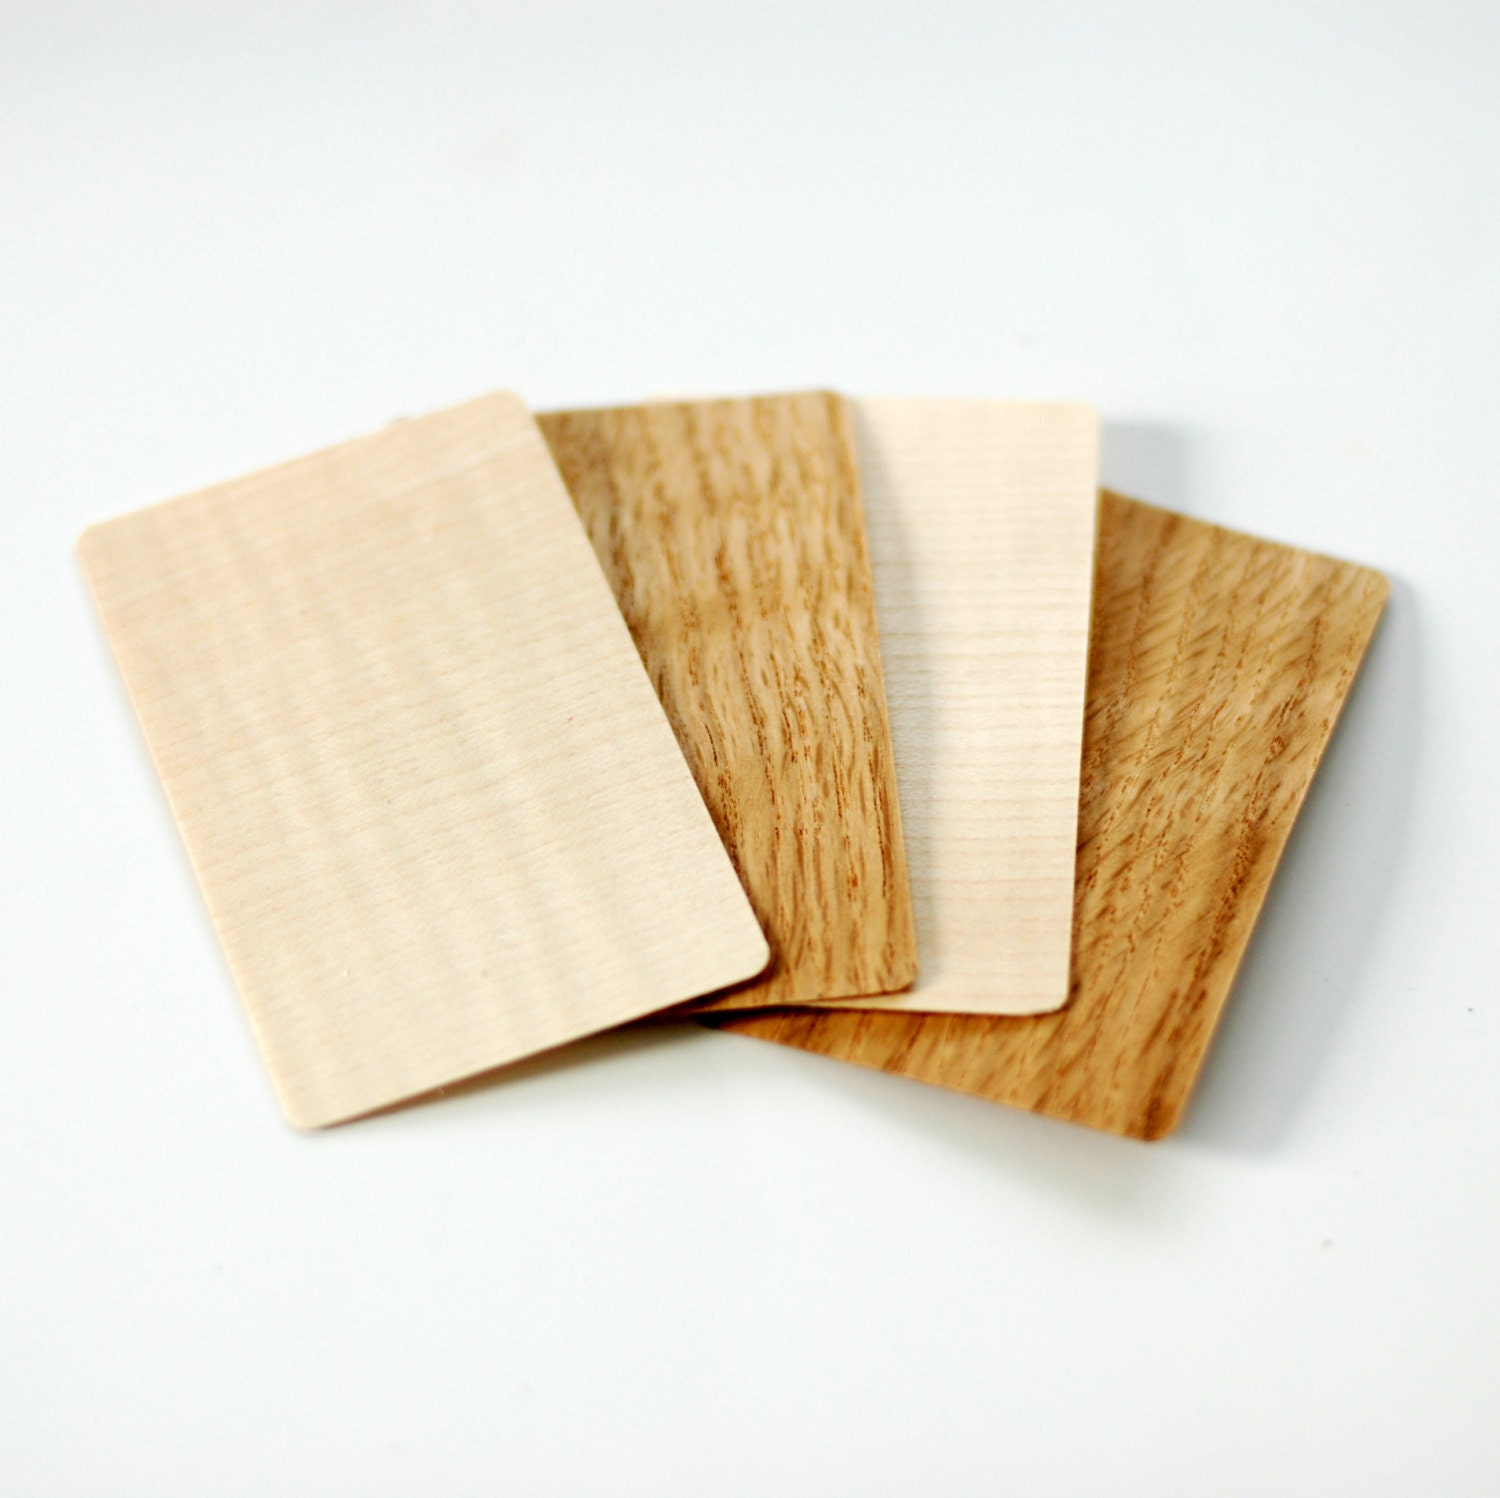 Wood business cards Wooden business cards Blank wood tags